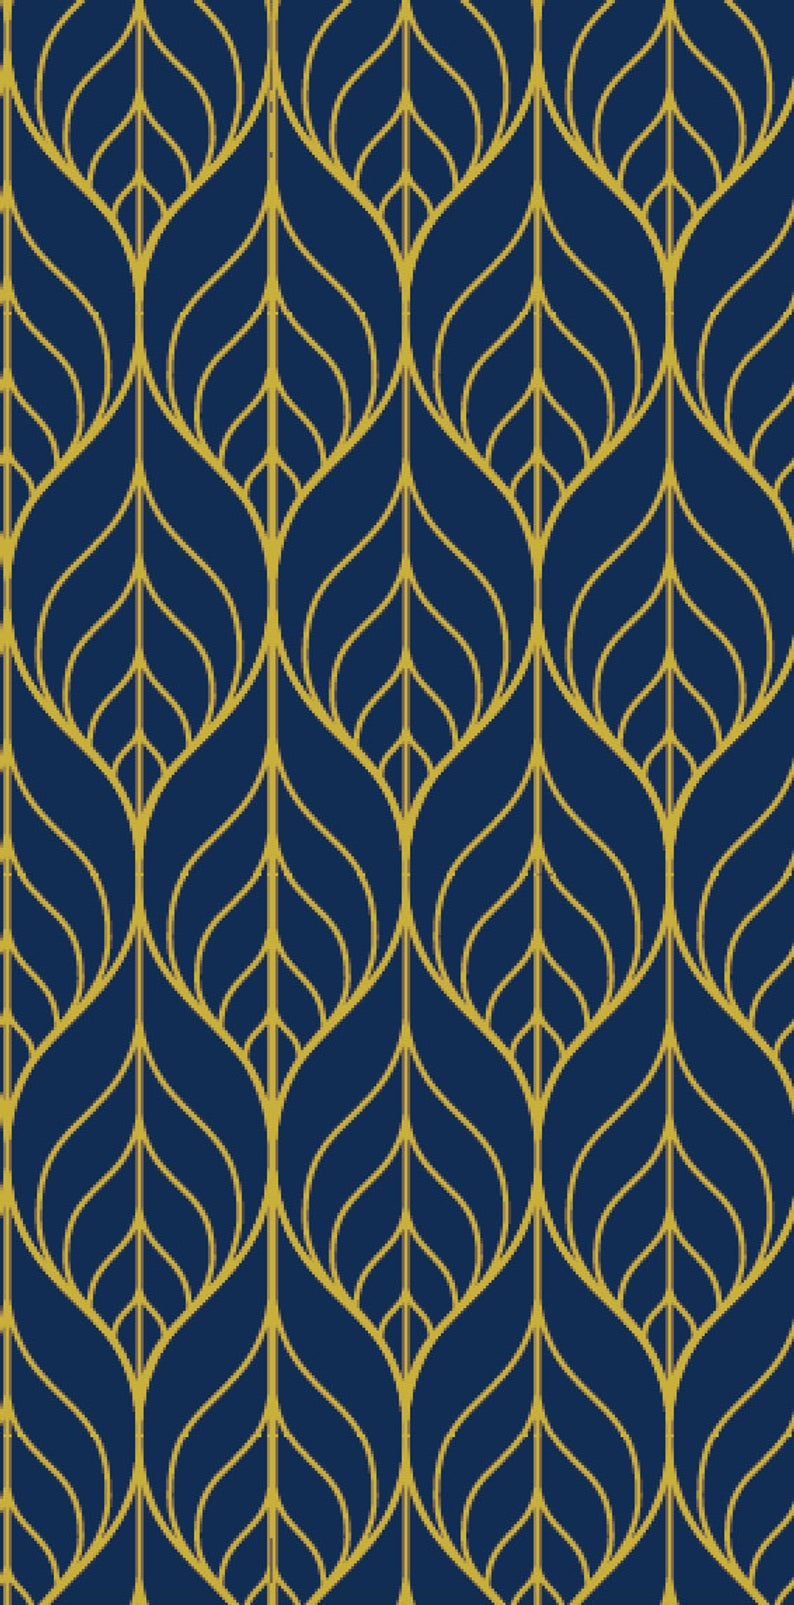 Removable Wallpaper Peel And Stick Wallpaper Leaf Wallpaper Etsy Navy Wallpaper Leaf Wallpaper Gold Wallpaper Background